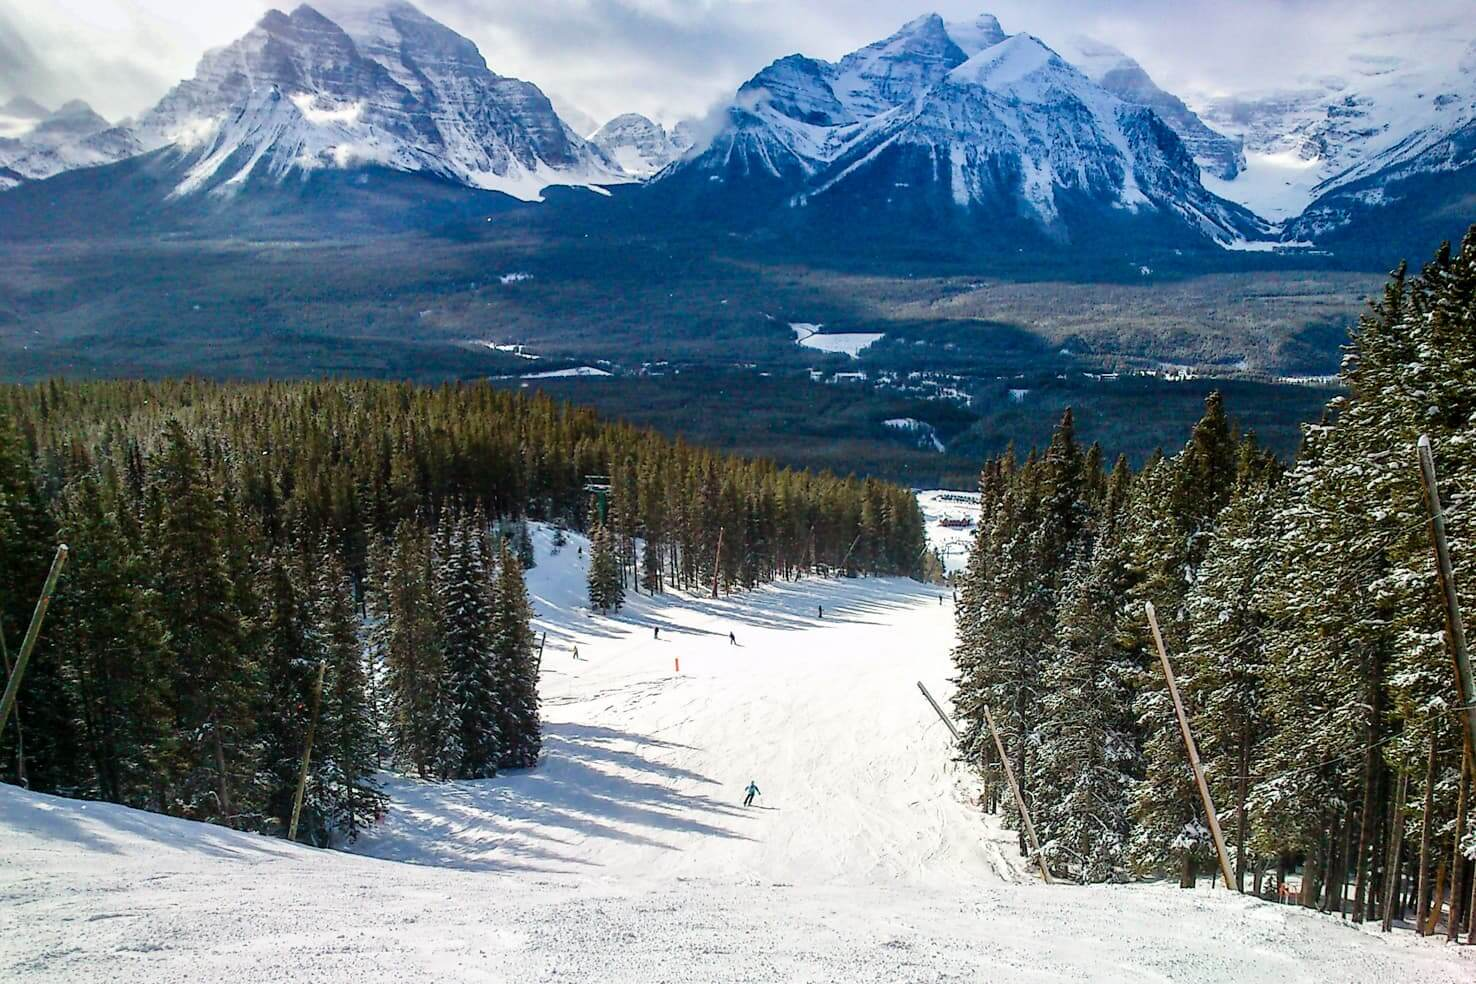 100 best things to do in Banff National Park, Canada - Ski at world class Lake Louise resort